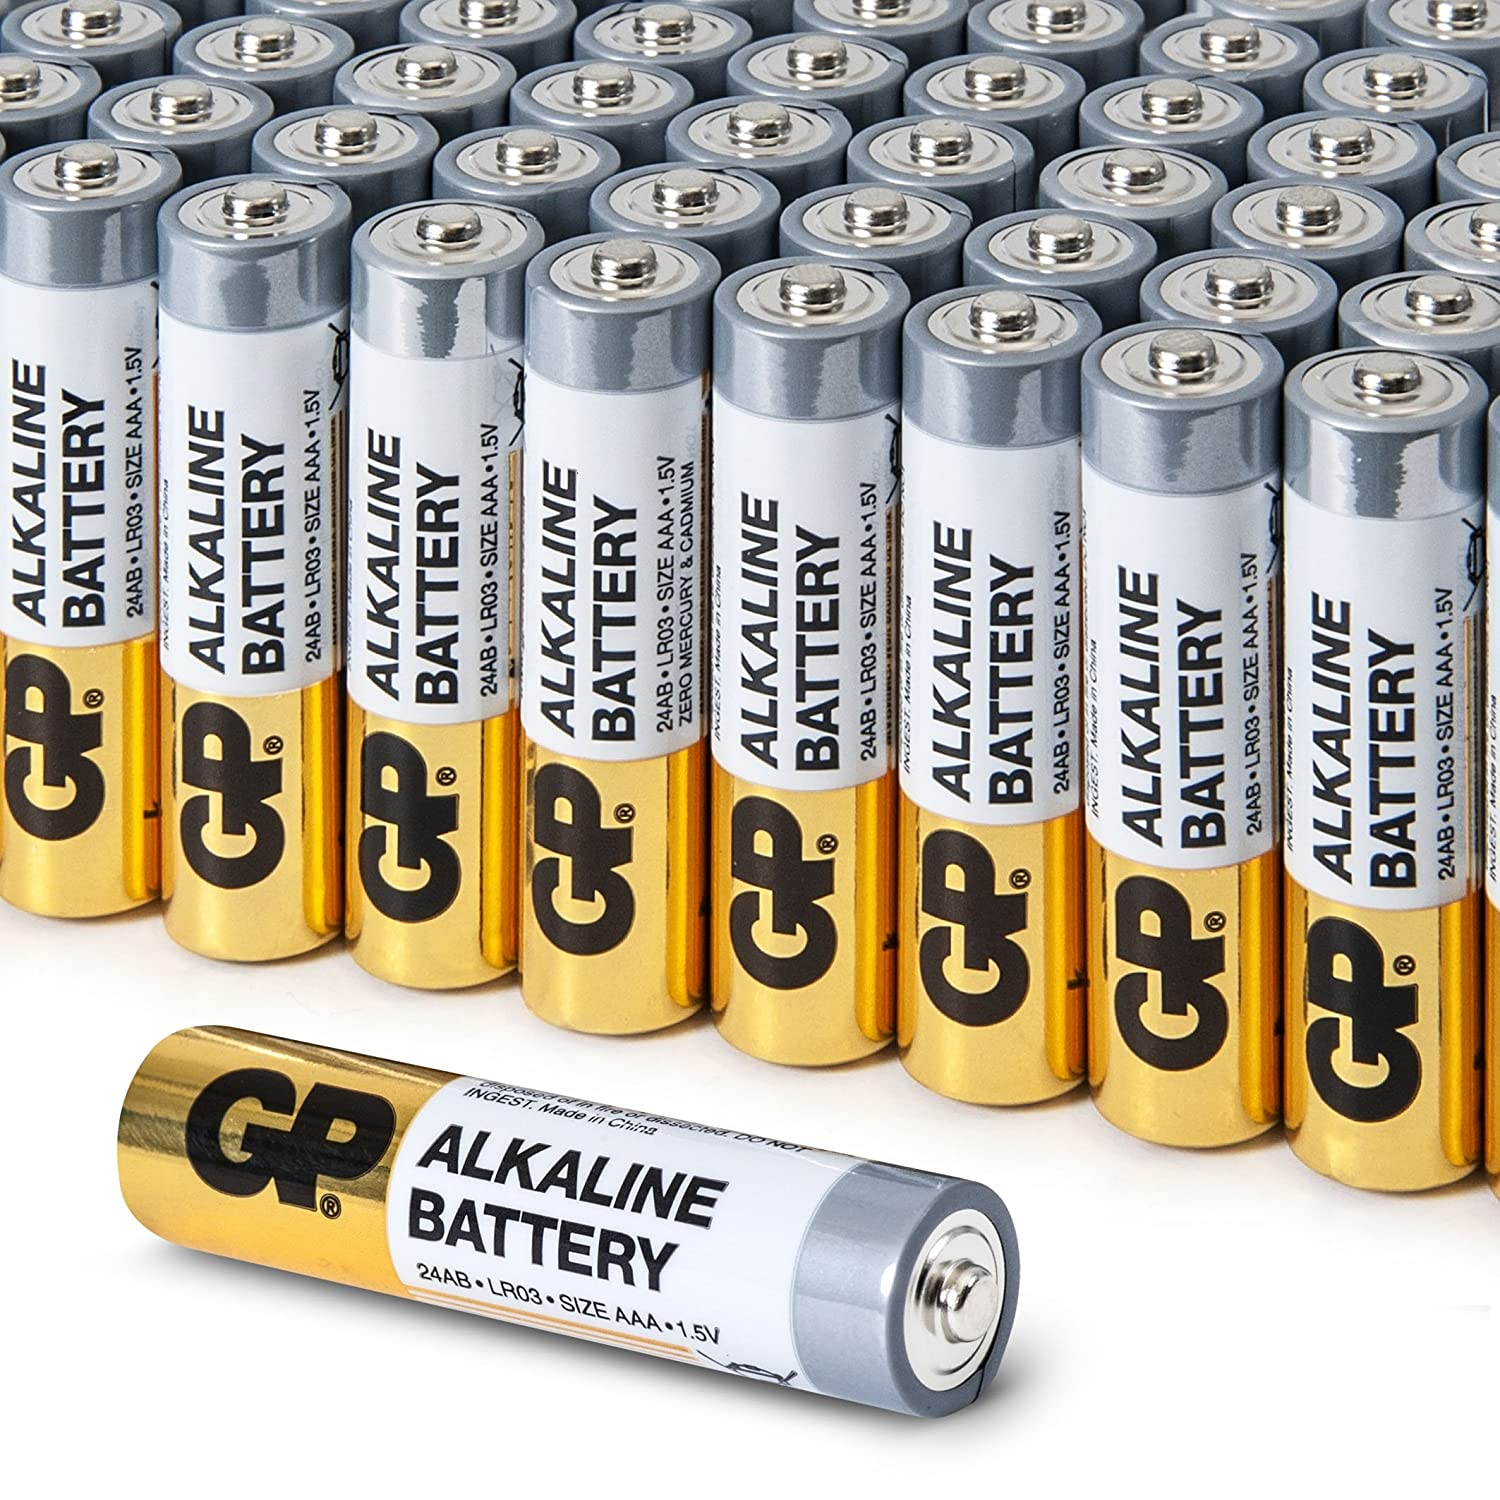 e6cce42bd0c40 AAA Battery Value Pack by GP | High-Performance 1.5V: Amazon.co.uk:  Electronics